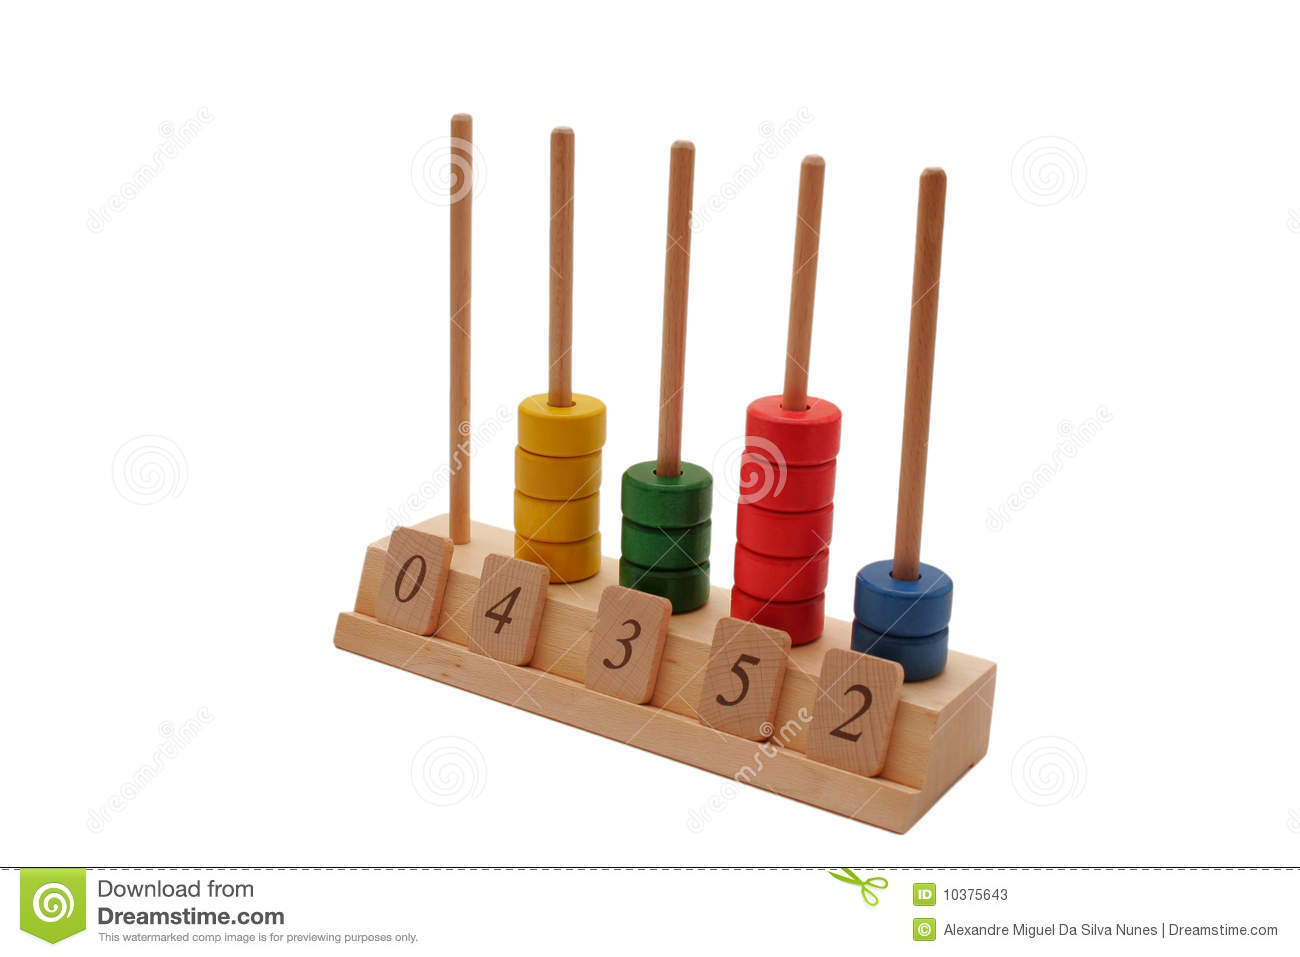 The abacus and the sense of number